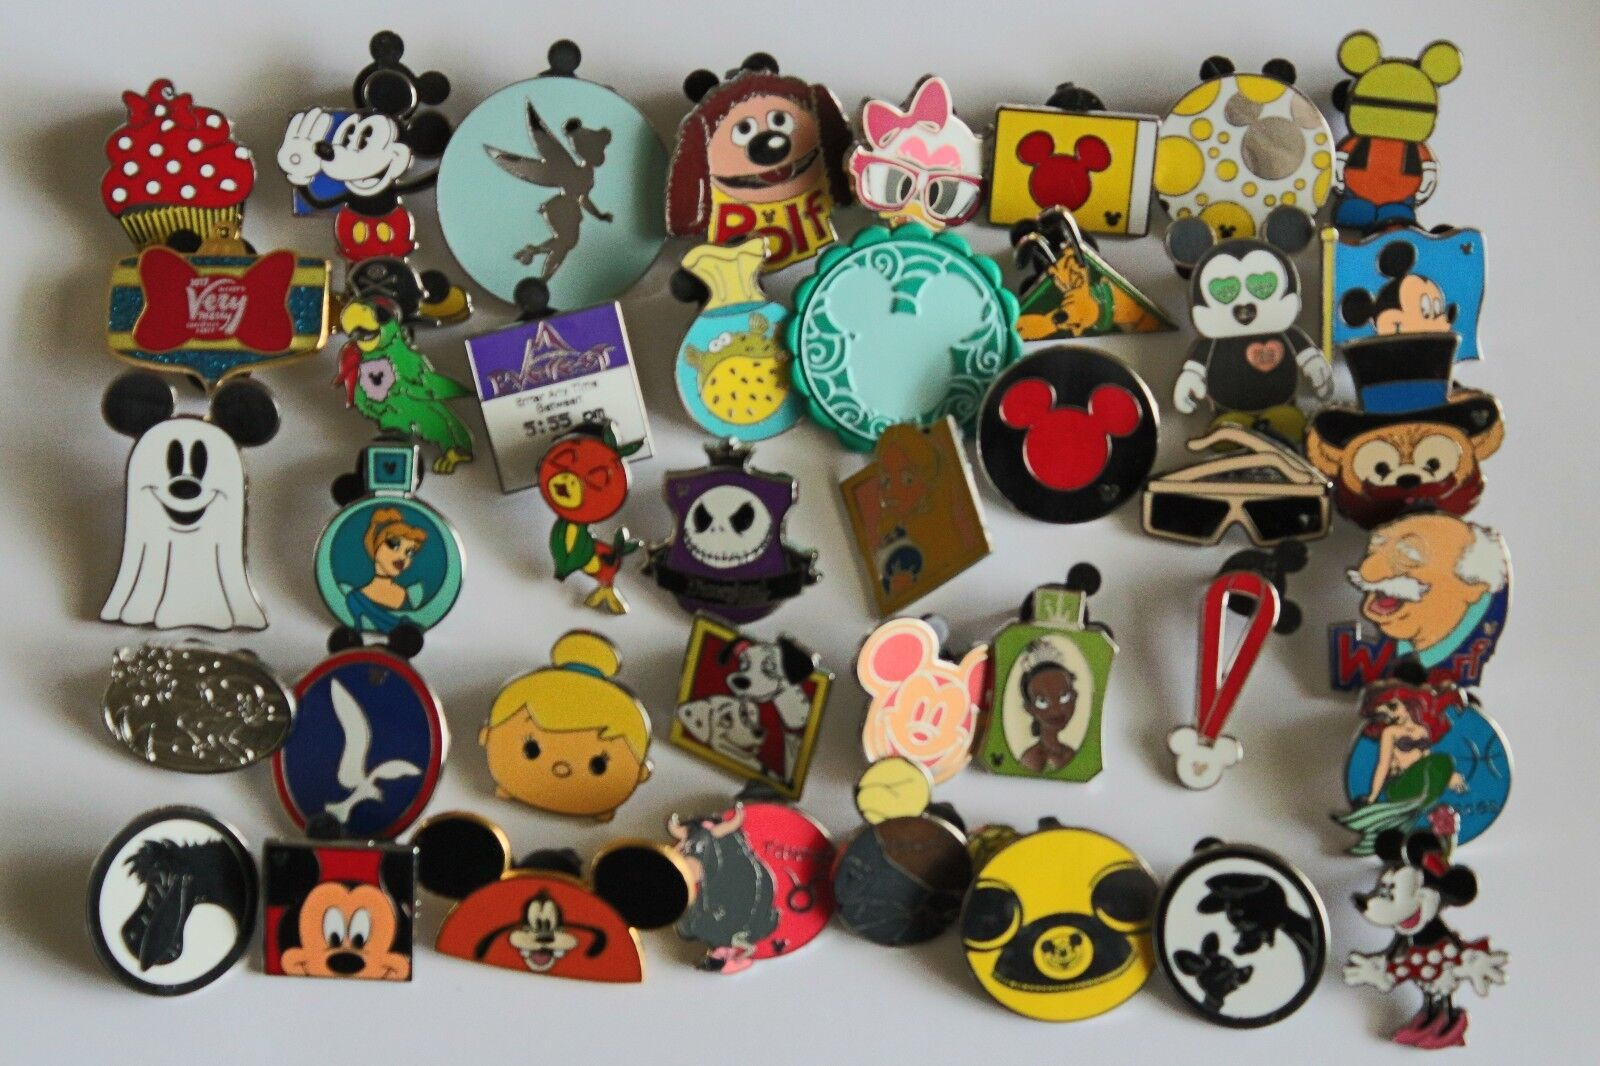 Disney-Pin-Trading-Lot-of-50-Assorted-Pins.-No-Doubles.-100%Tradable.